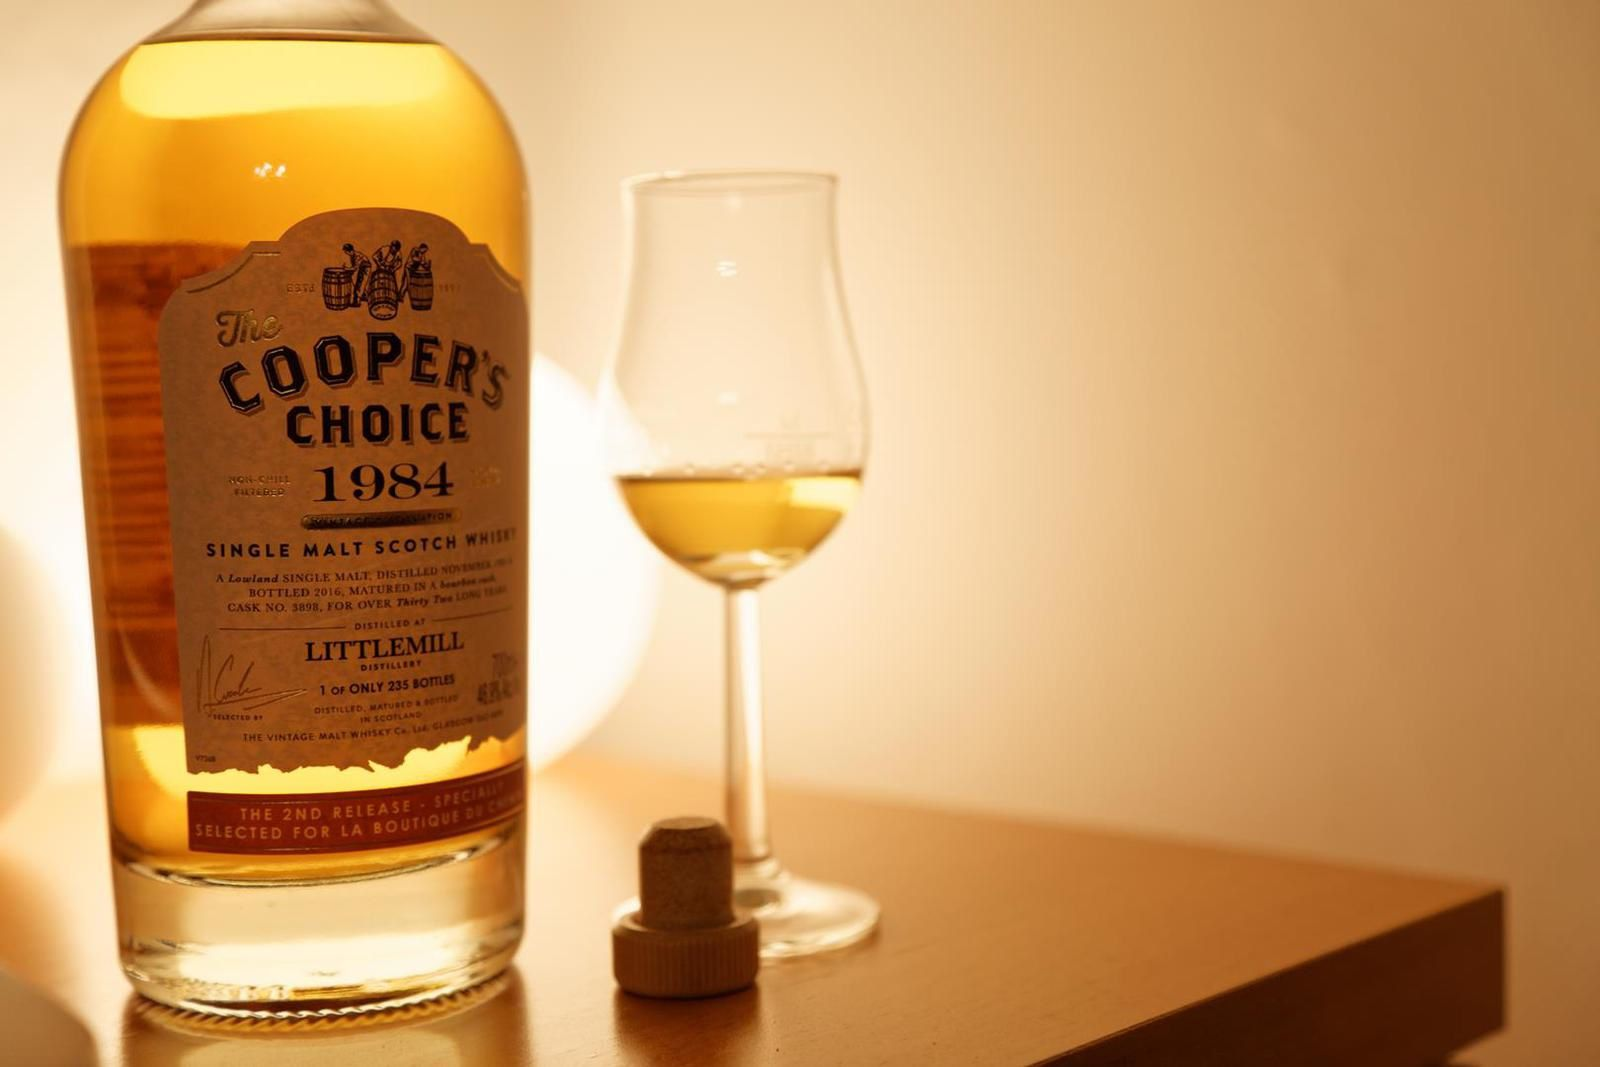 Littlemill 1984/2016 The Cooper's Choice pour La Boutique du Chemin, 32 ans, 46.9%